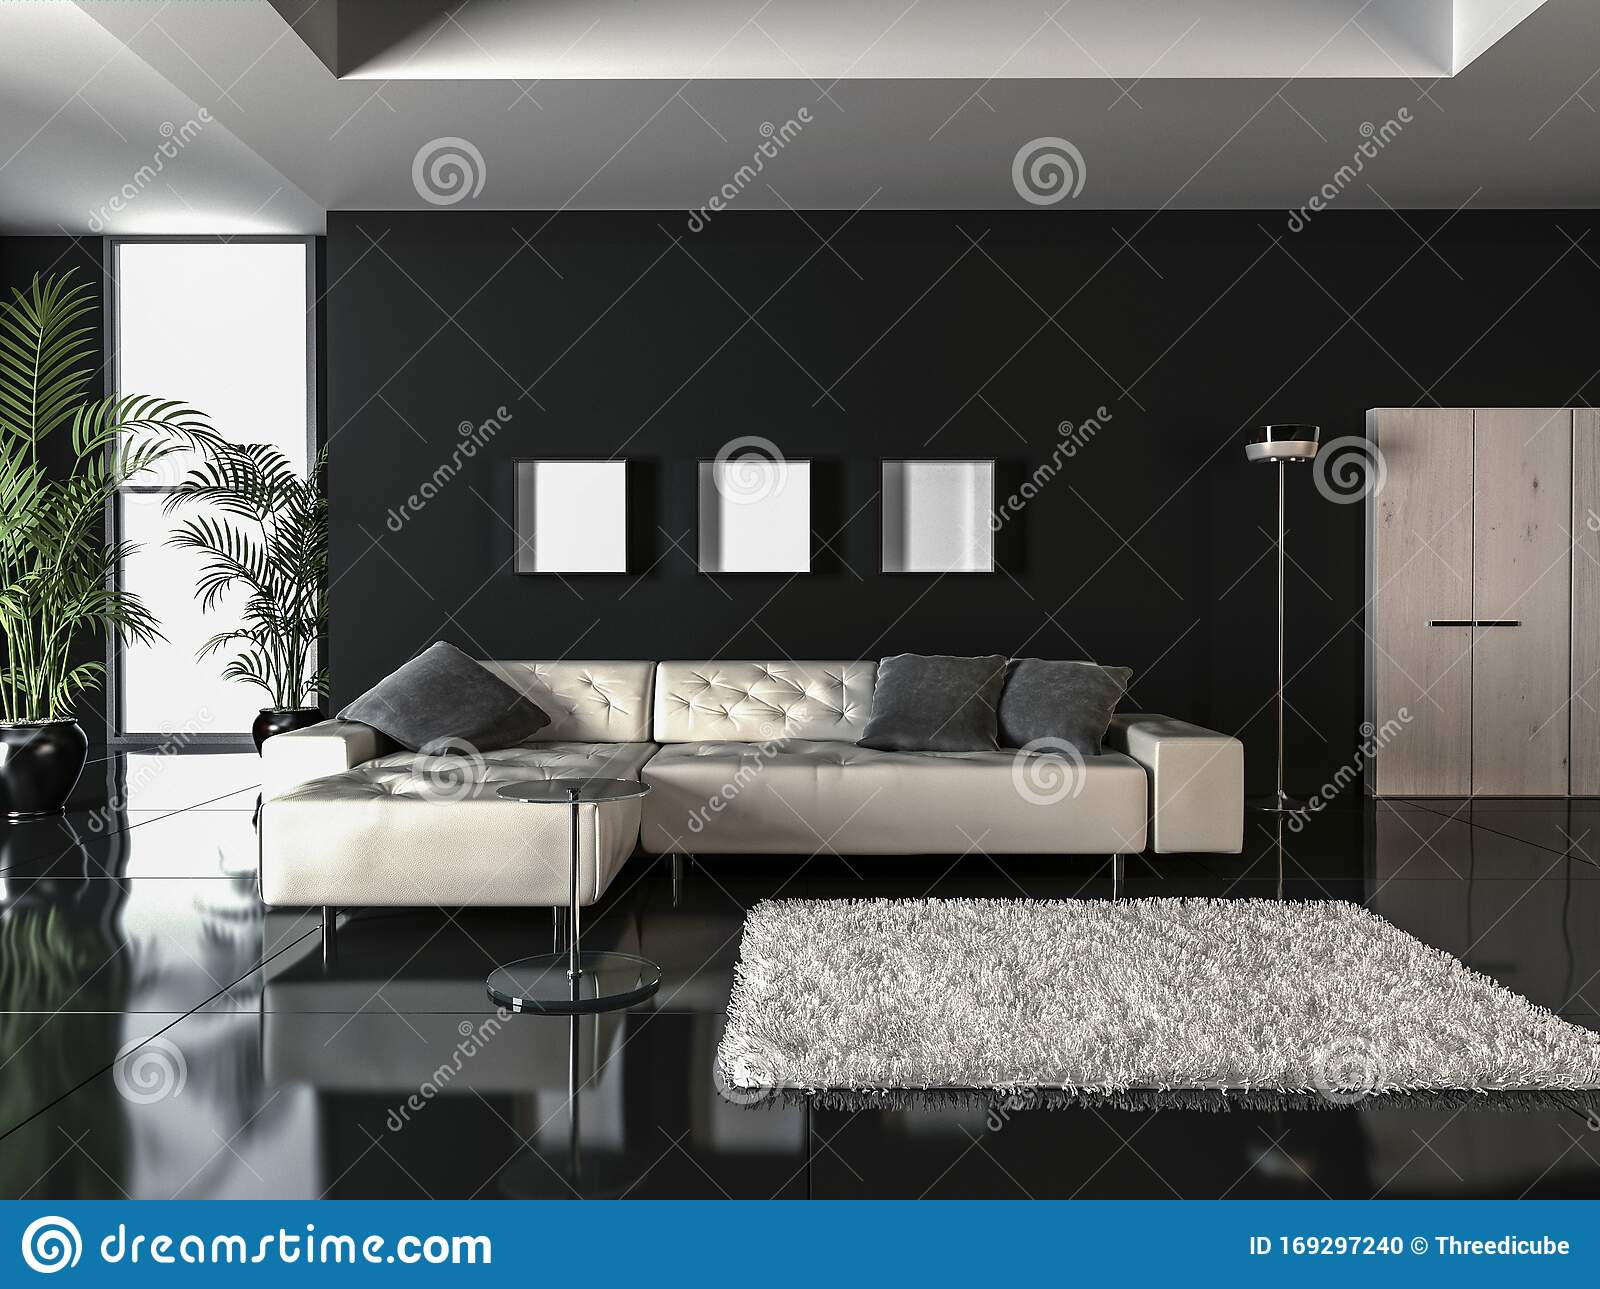 Showcase Interior Design In Minimalist Style 3d Render Stock Illustration Illustration Of Draft Accent 169297240